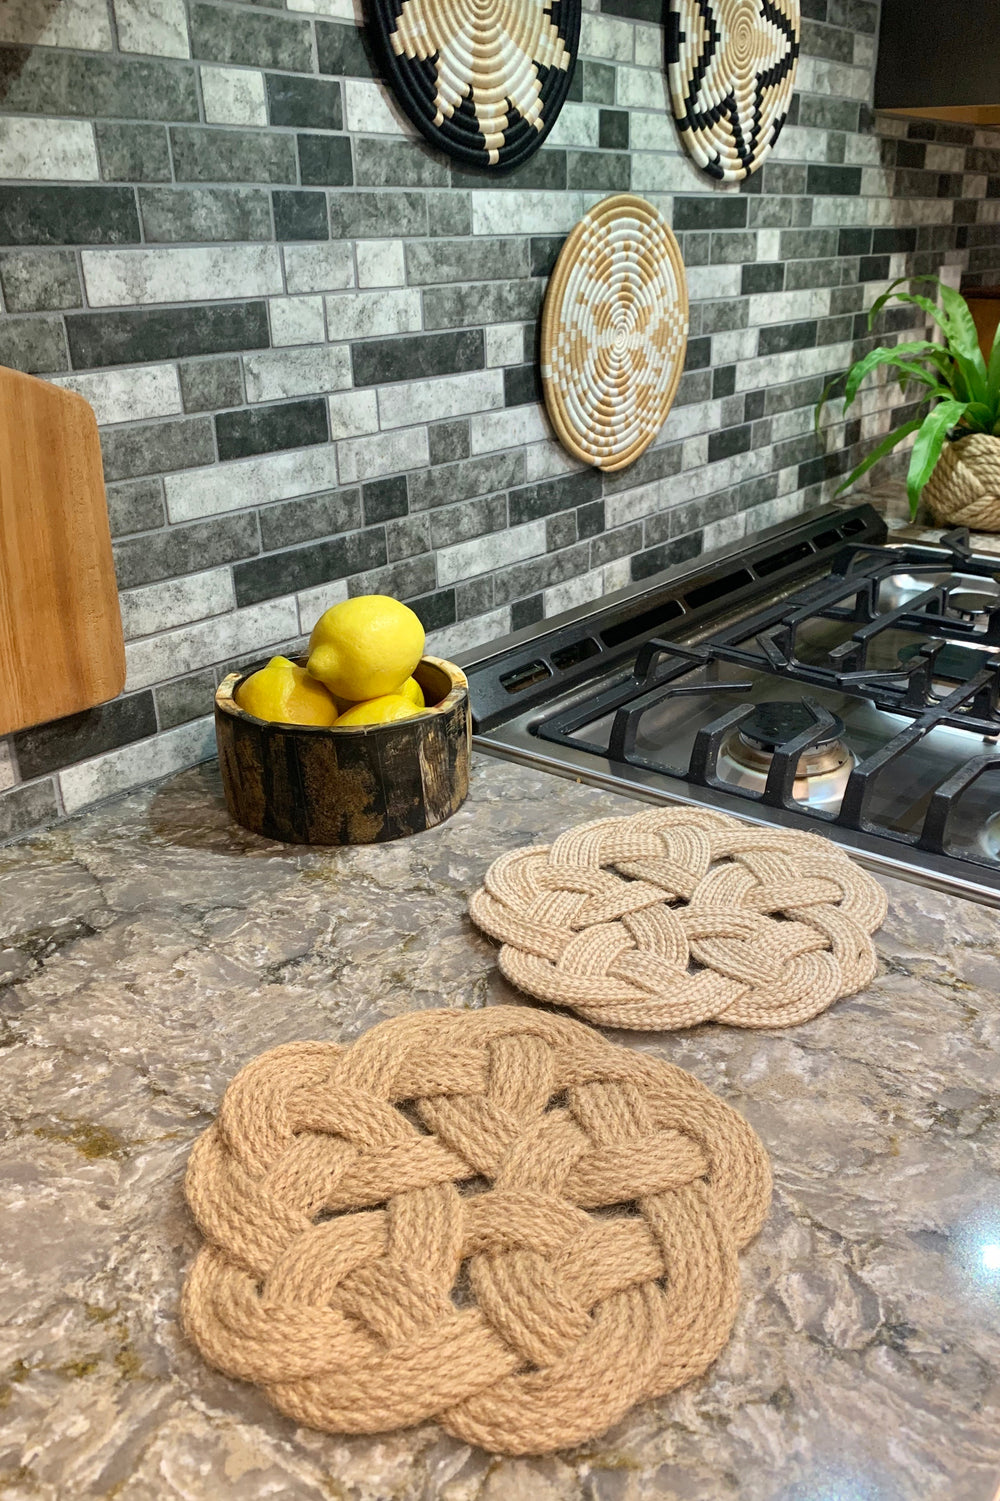 Jute Trivets by Freeleaf from Asia